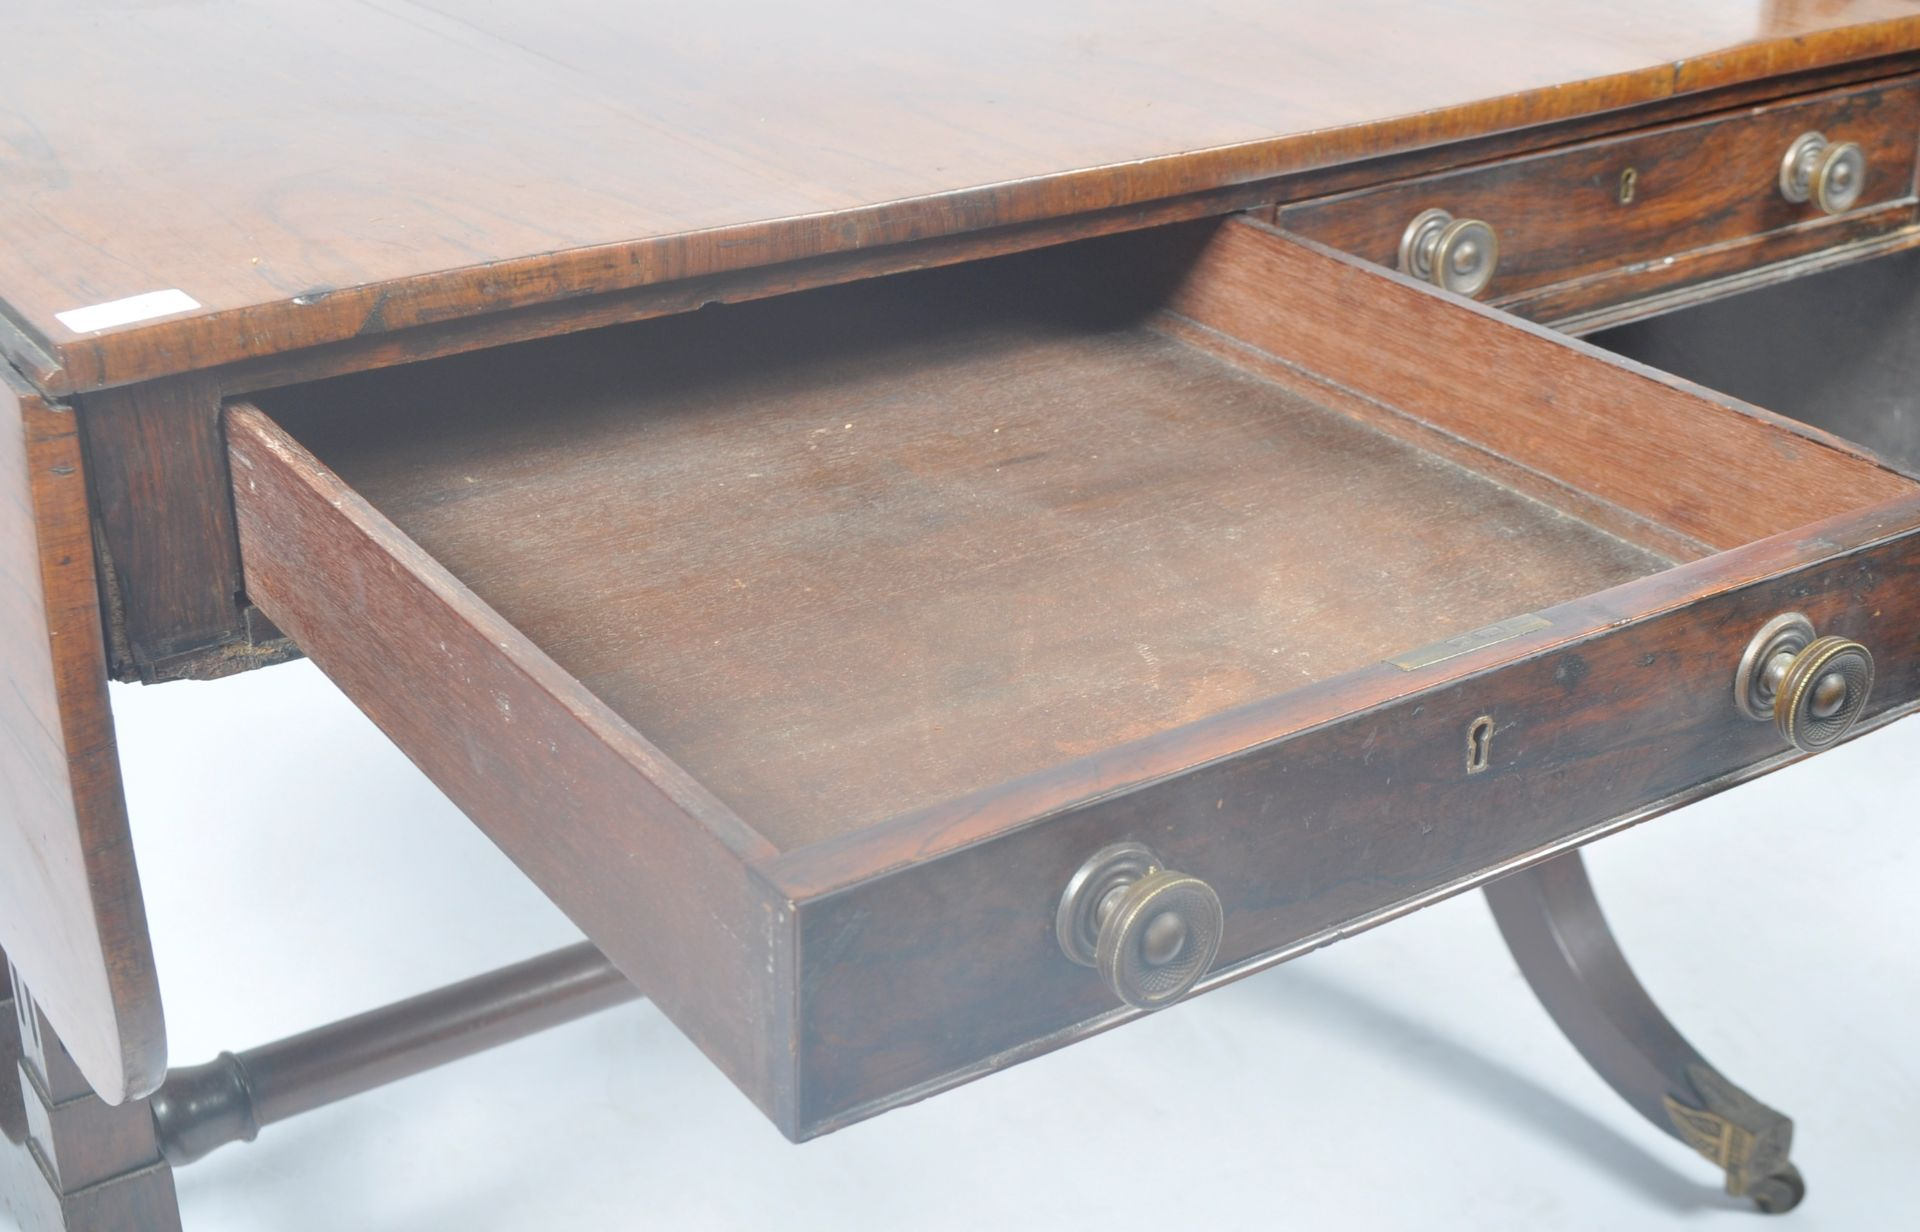 ANTIQUE ROSEWOOD REGENCY SOFA TABLE RETAILED BY HARRIS OF LONDON - Image 5 of 10